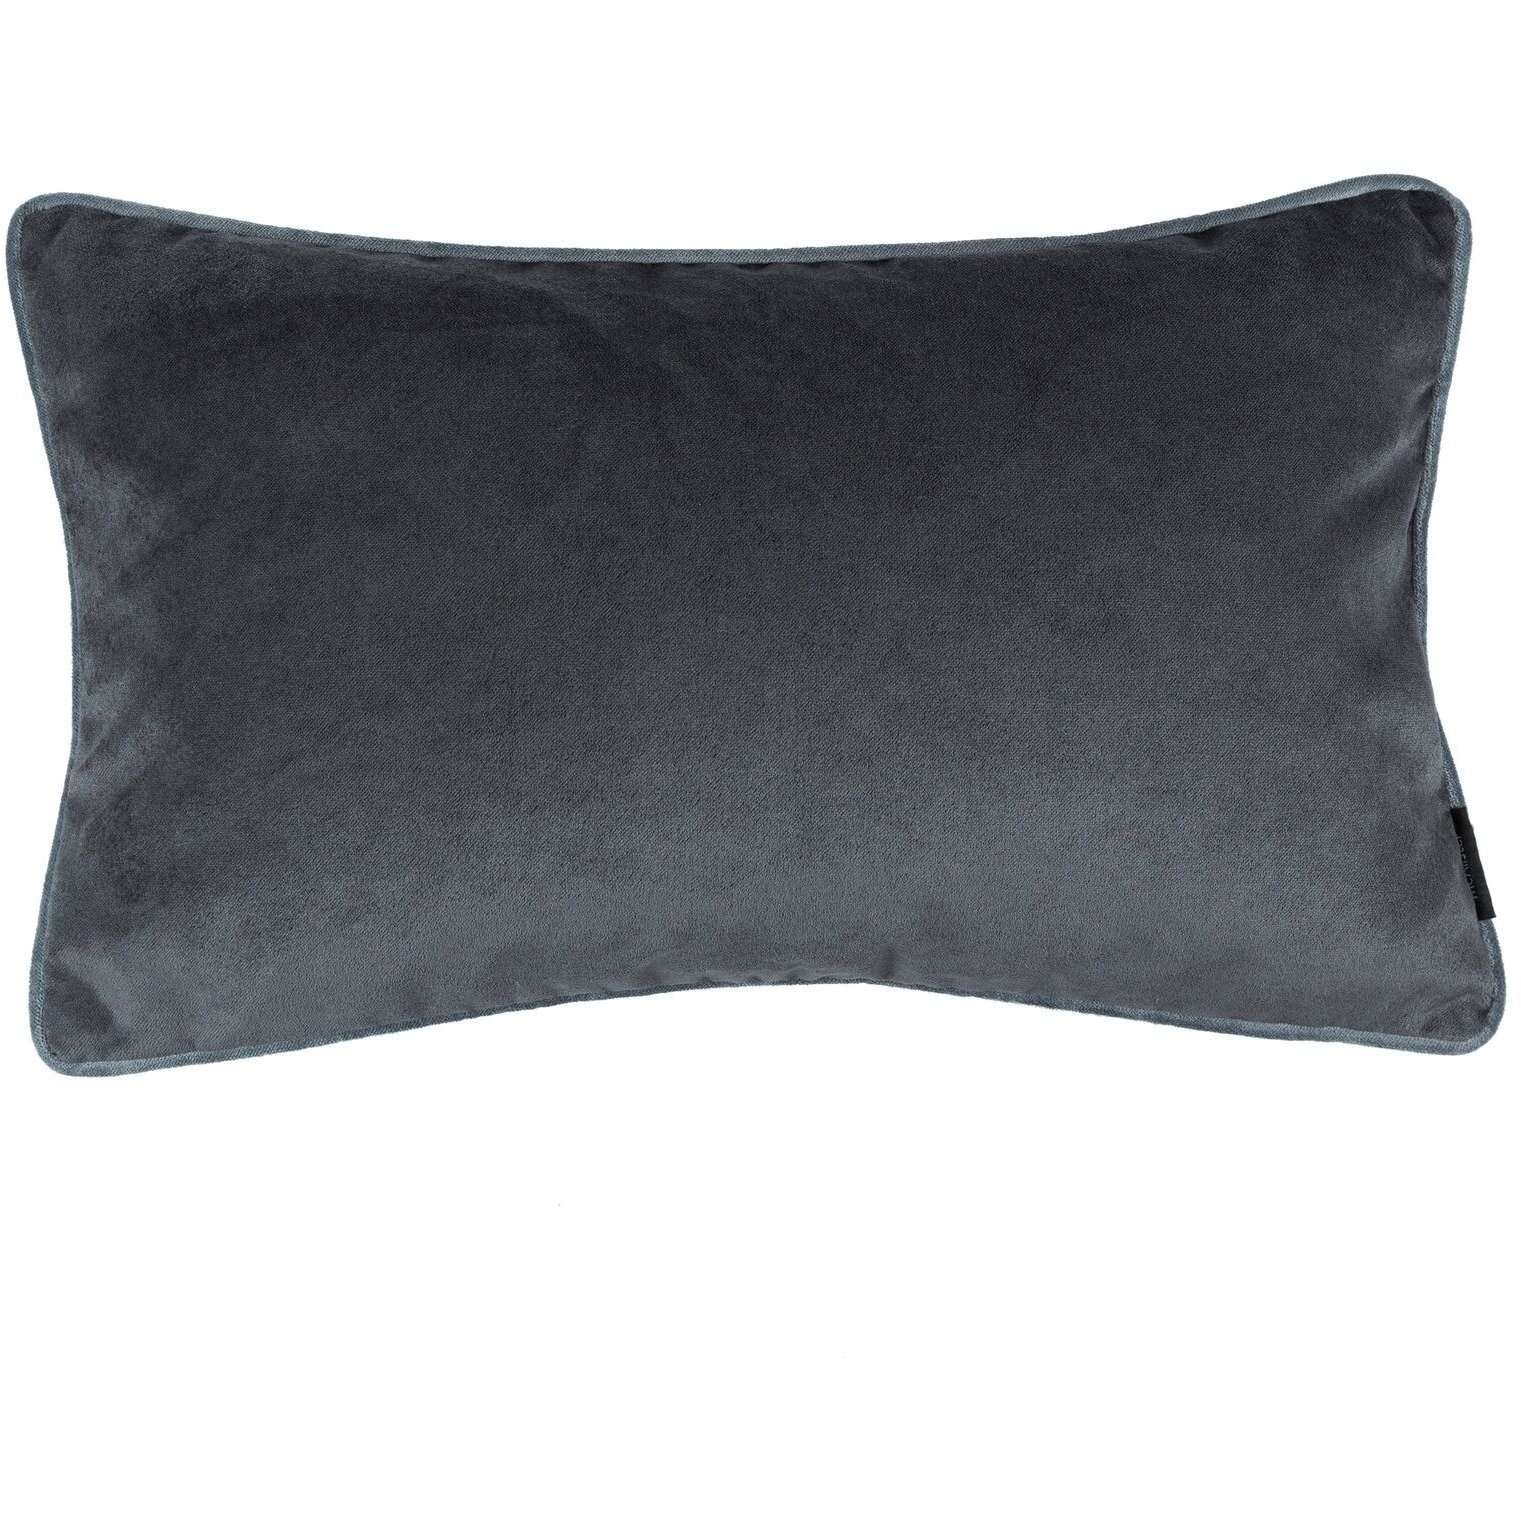 McAlister Textiles Matt Charcoal Grey Velvet Cushion Cushions and Covers Cover Only 50cm x 30cm